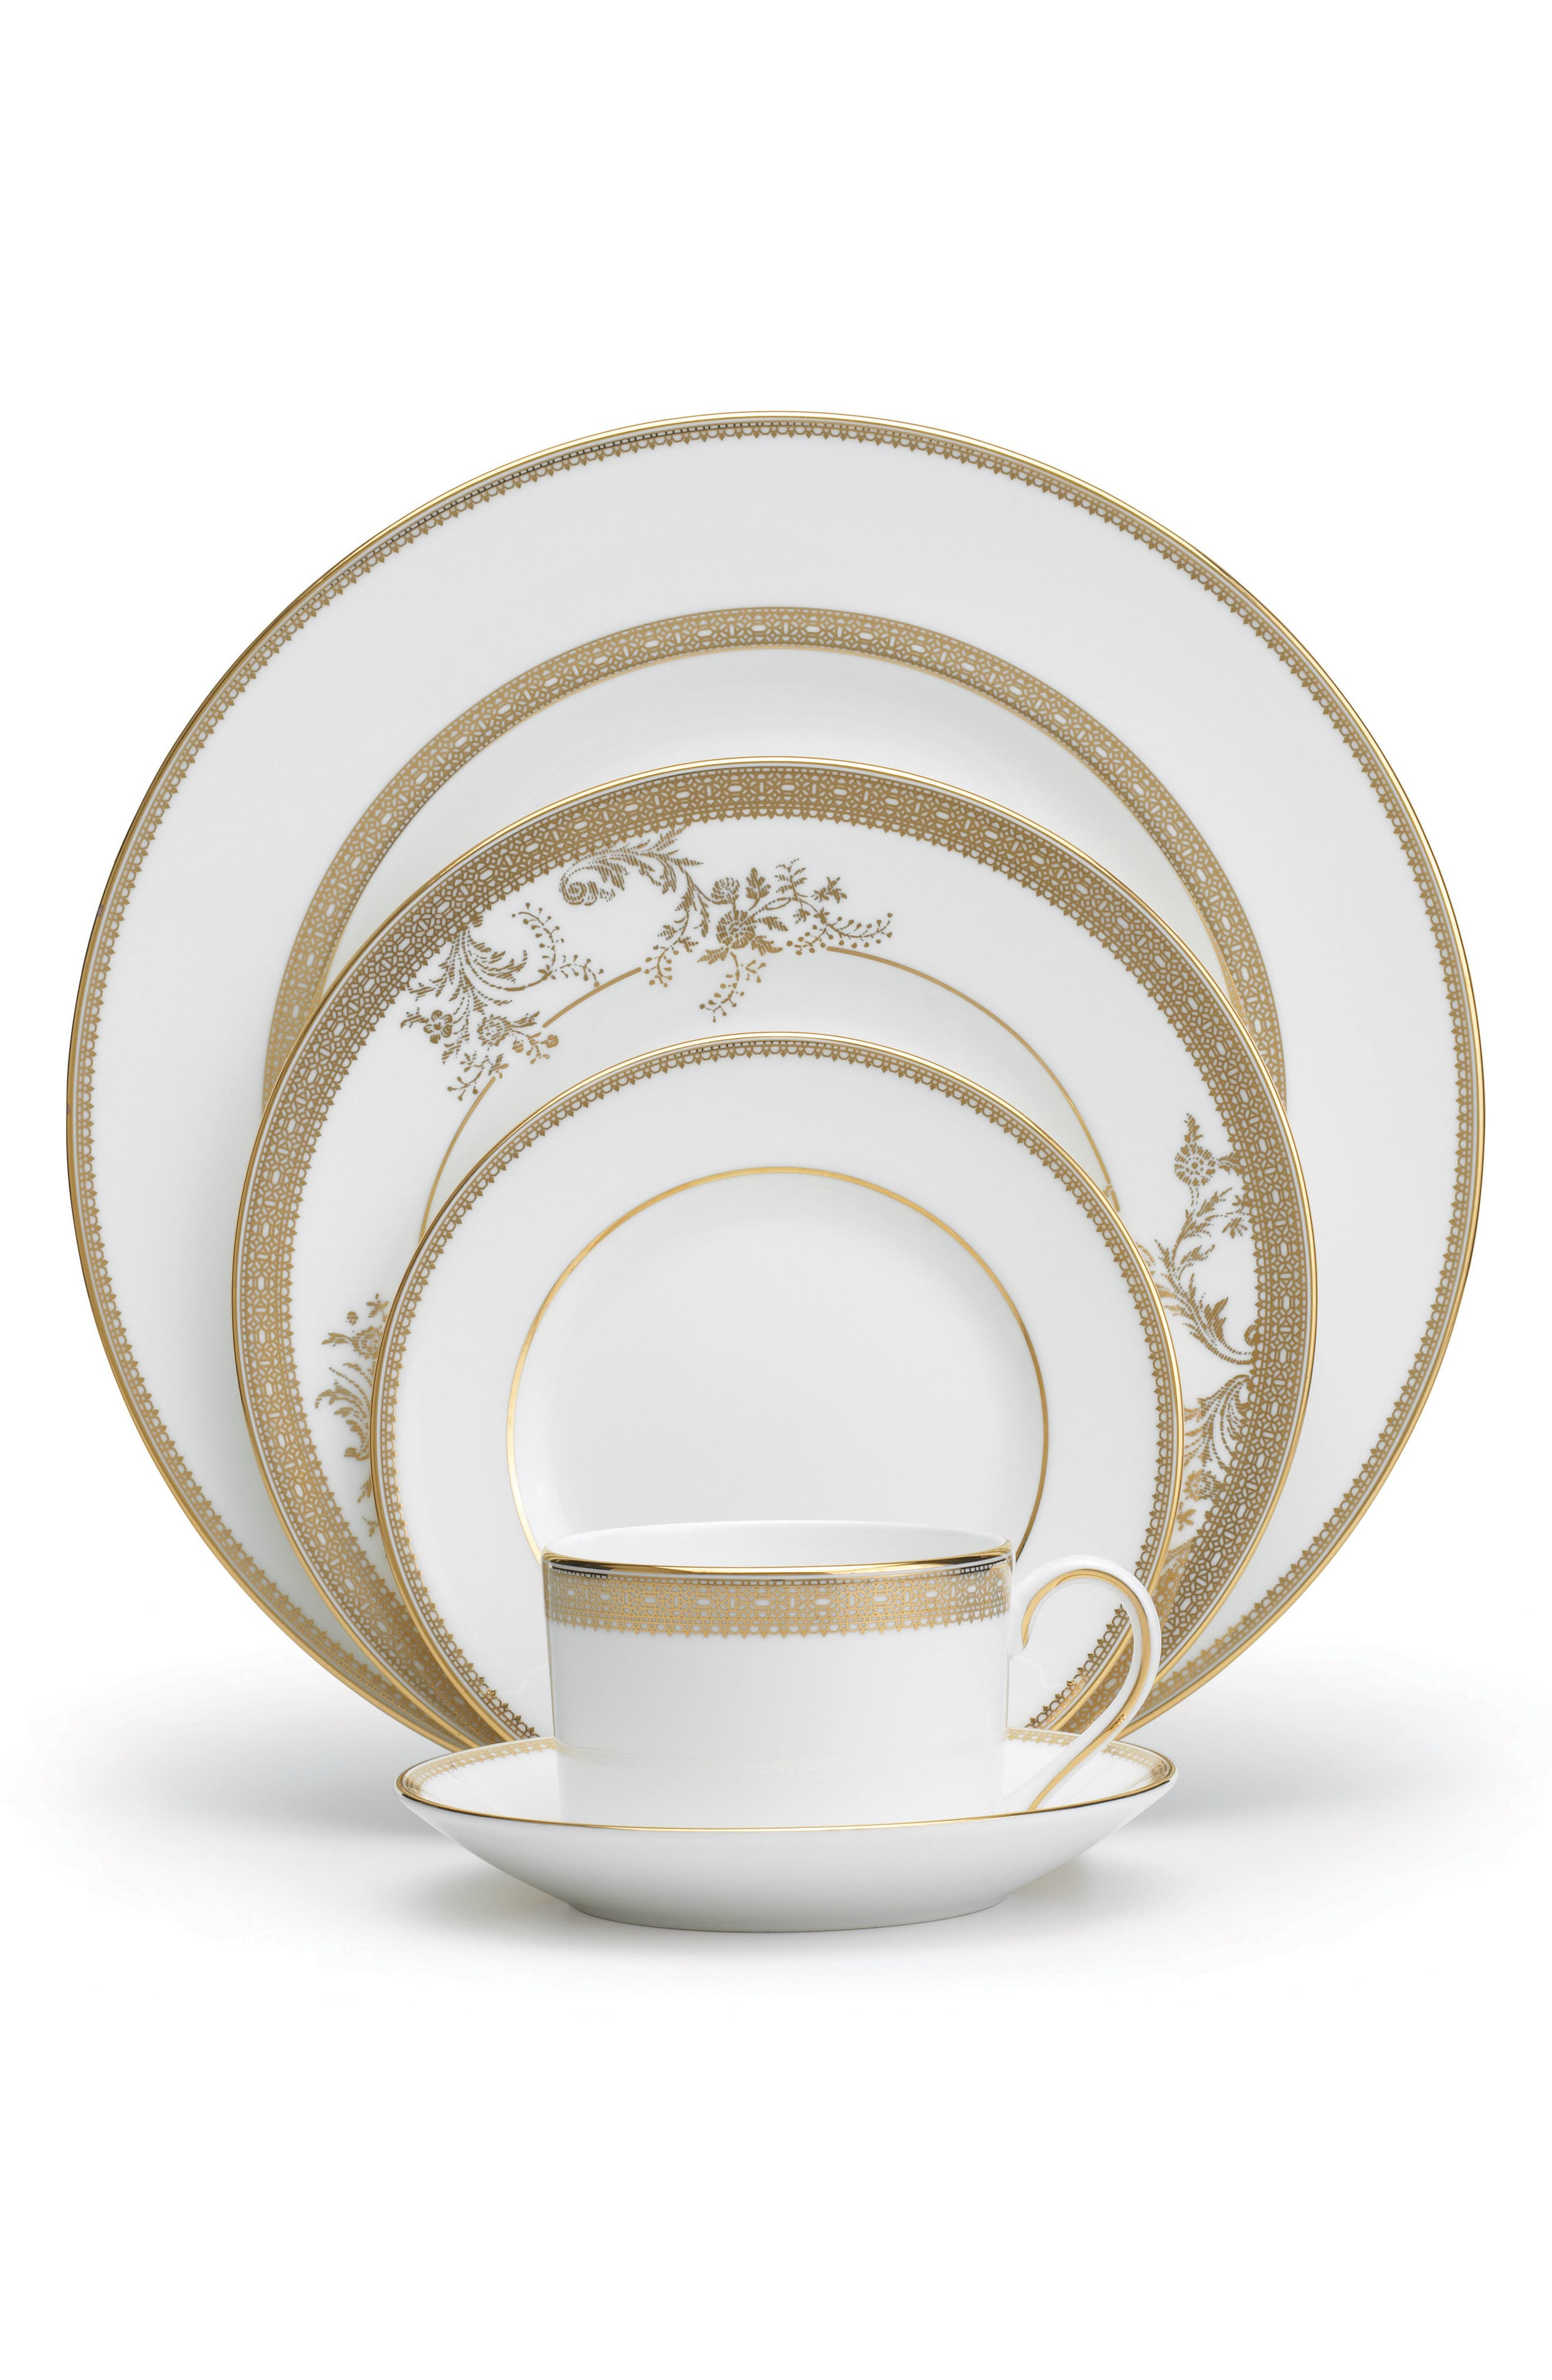 5-Piece Bone China Dinnerware Place Setting,                             Main thumbnail 1, color,